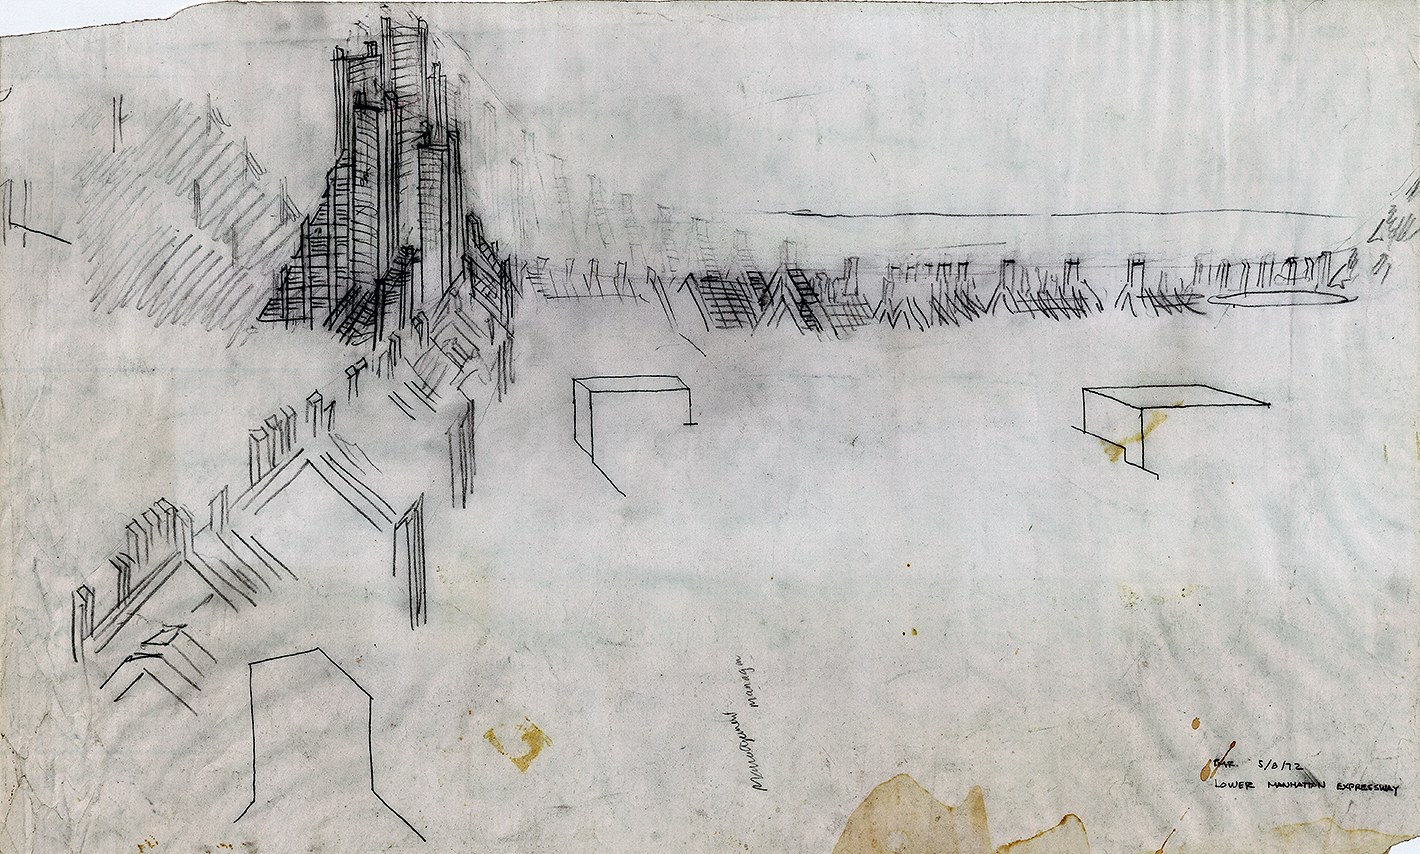 Lower Manhattan Expressway, New York City. Sketch dated May 8, 1972.